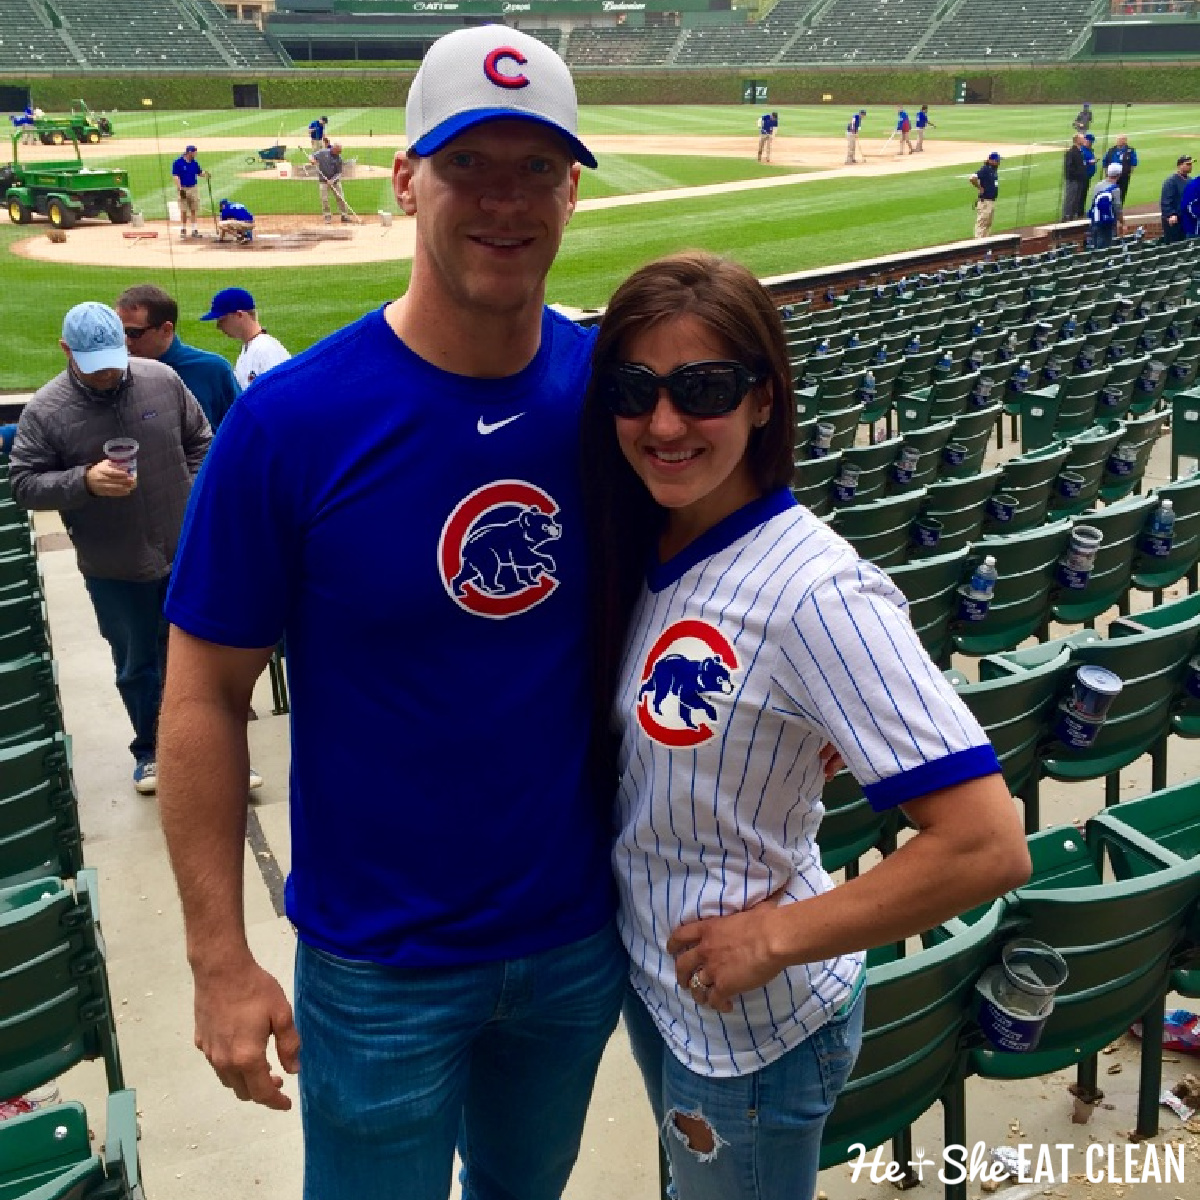 male and female standing behind home plate at Wrigley field wearing Cubs gear